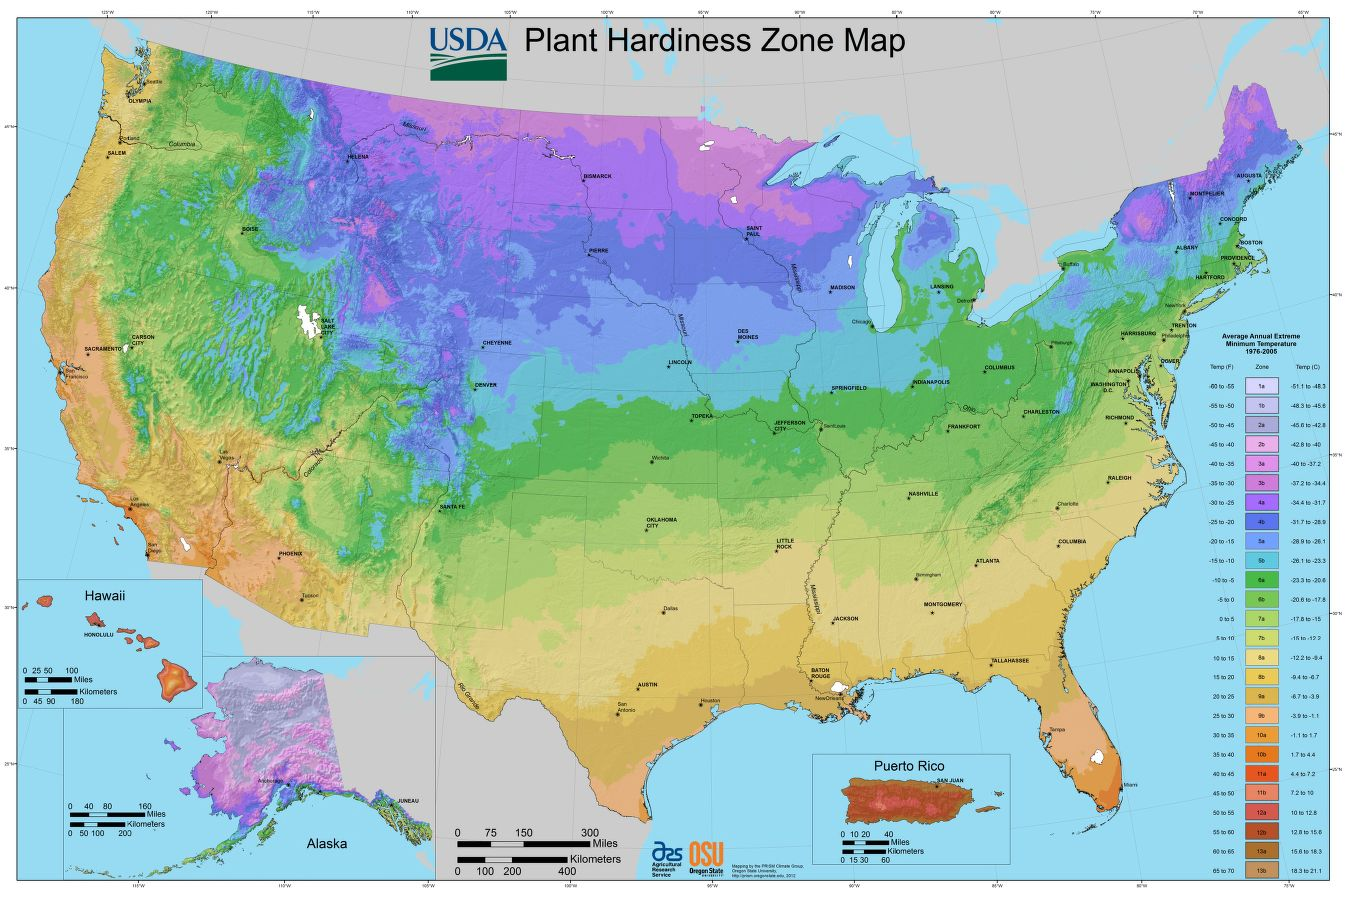 This colorful #map shows the zones of plant hardiness within the #USA!  https://t.co/aXU4MyDv5H https://t.co/V8zcsKTZXv